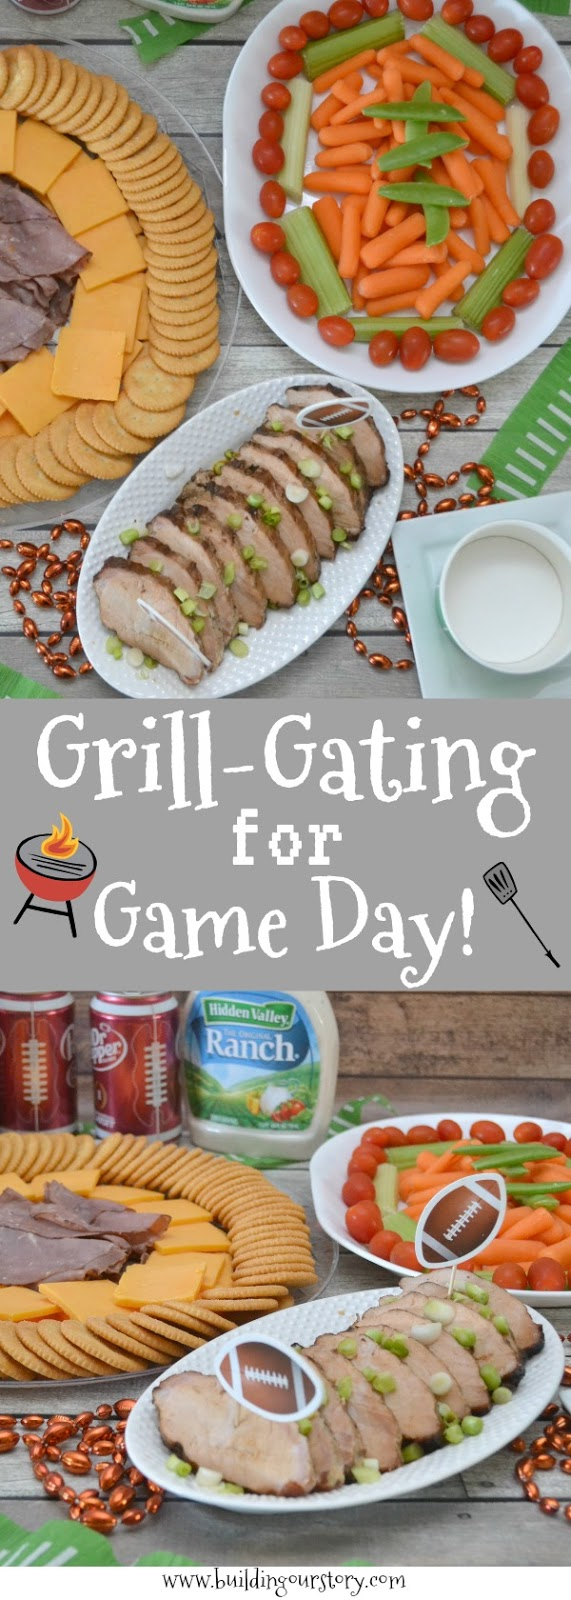 grill gating, football food, game day food, Dr Pepper recipes, Dr Pepper pork, Dr Pepper marinade, football party snacks, football party recipes, game day party, game day recipes, football party appetizers, appetizers for football game, tailgating recipes, great tailgating tips,